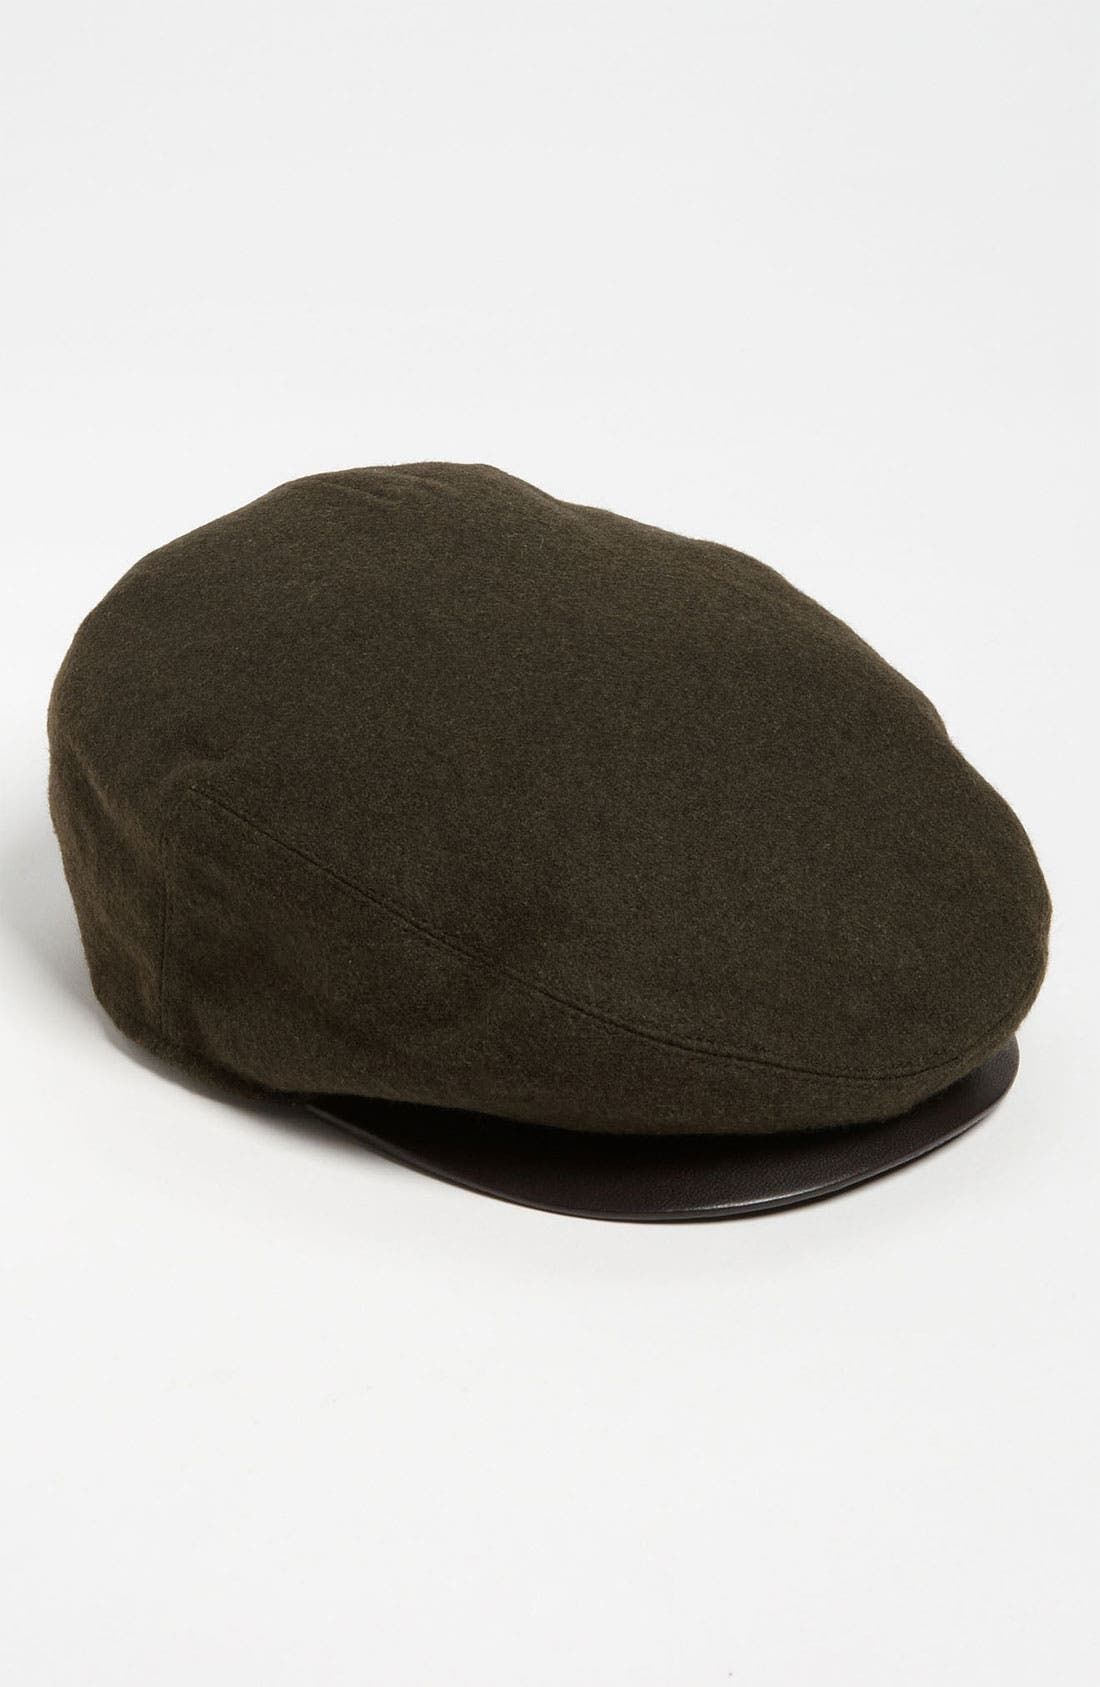 'Ivy' Leather Trim Cap,                         Main,                         color, Green